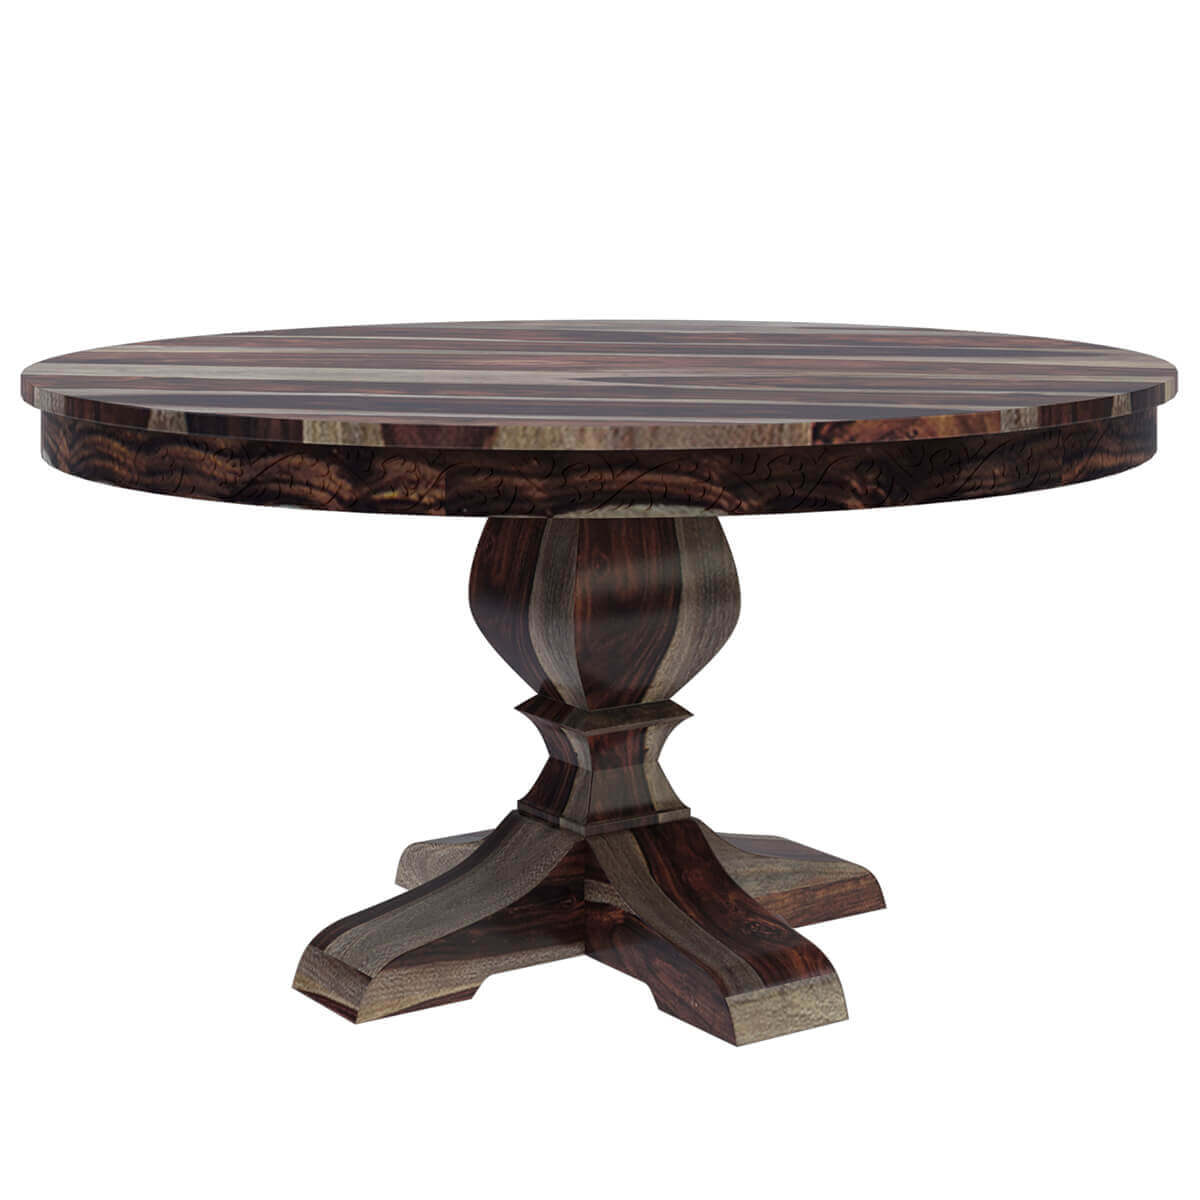 Hosford handcrafted solid wood 60 round pedestal dining table for Round dining table